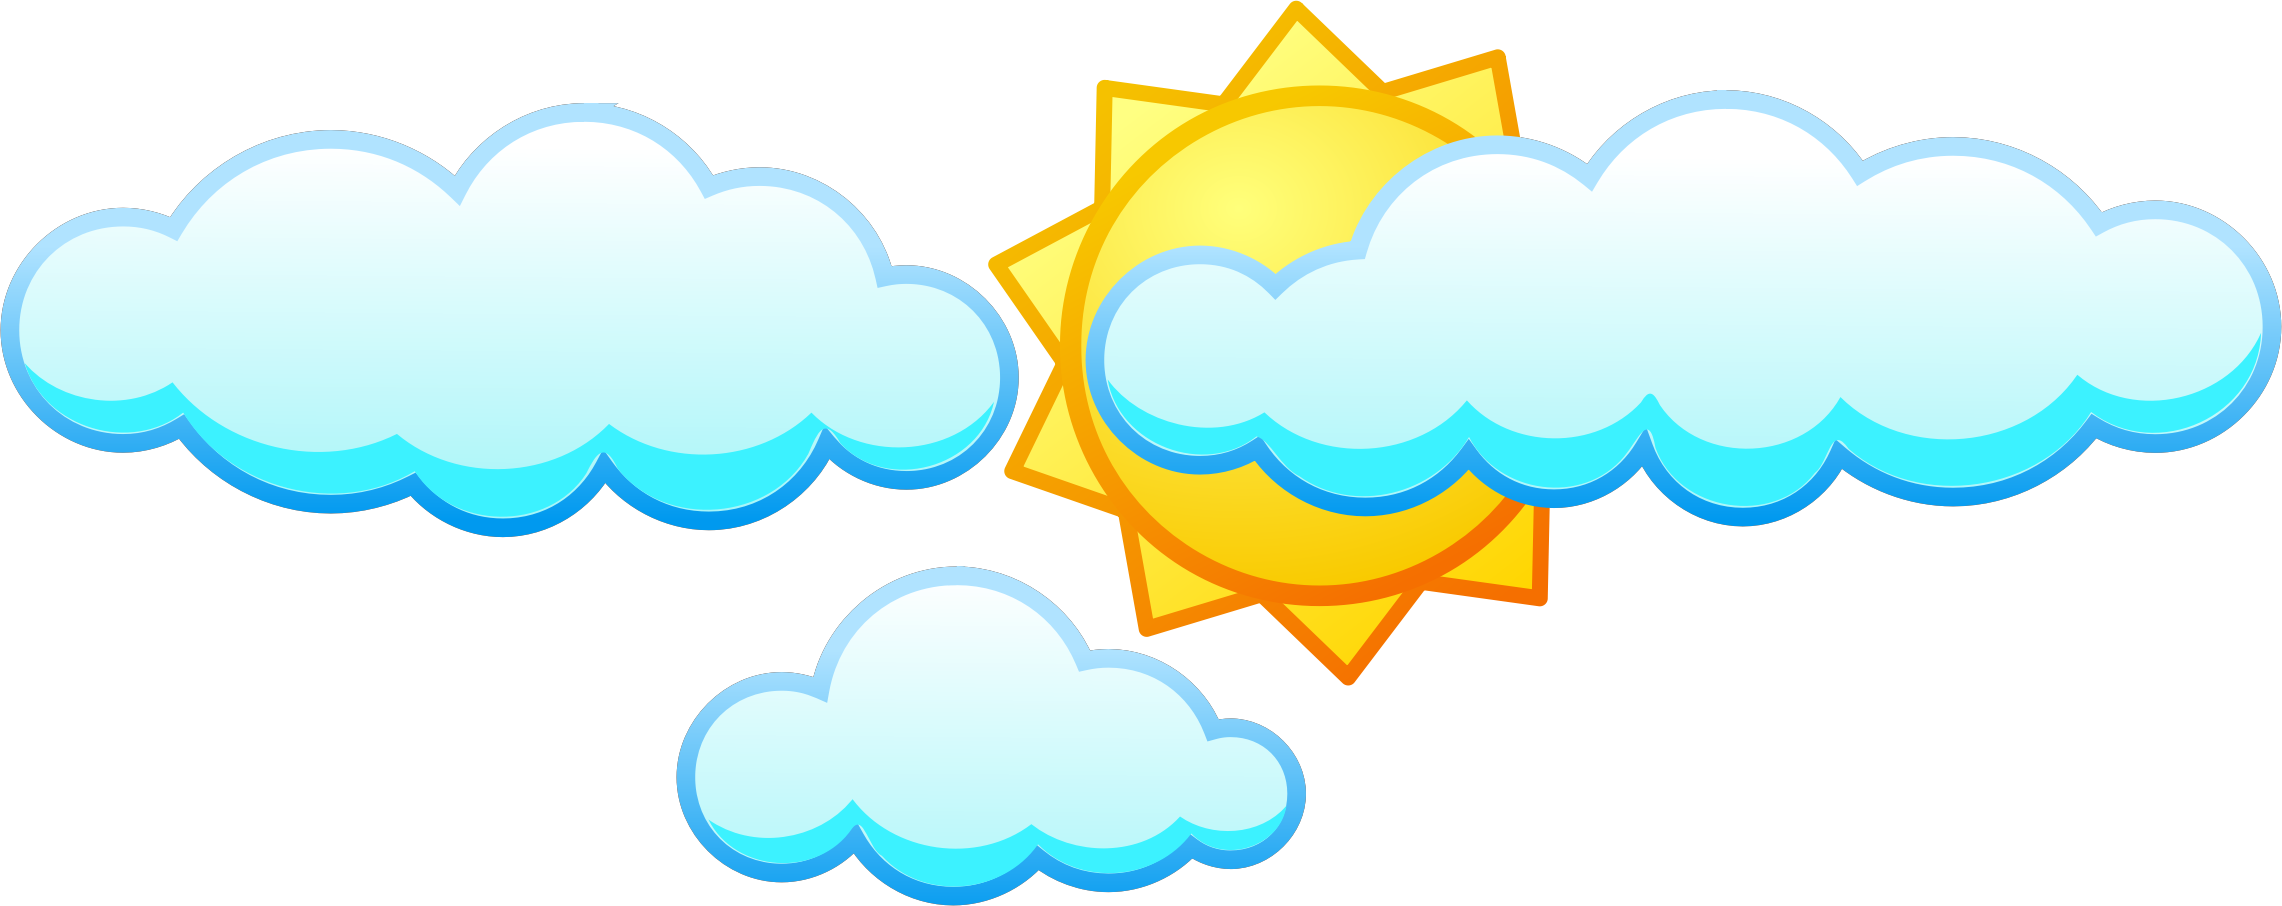 Sun Cloud Clipart.